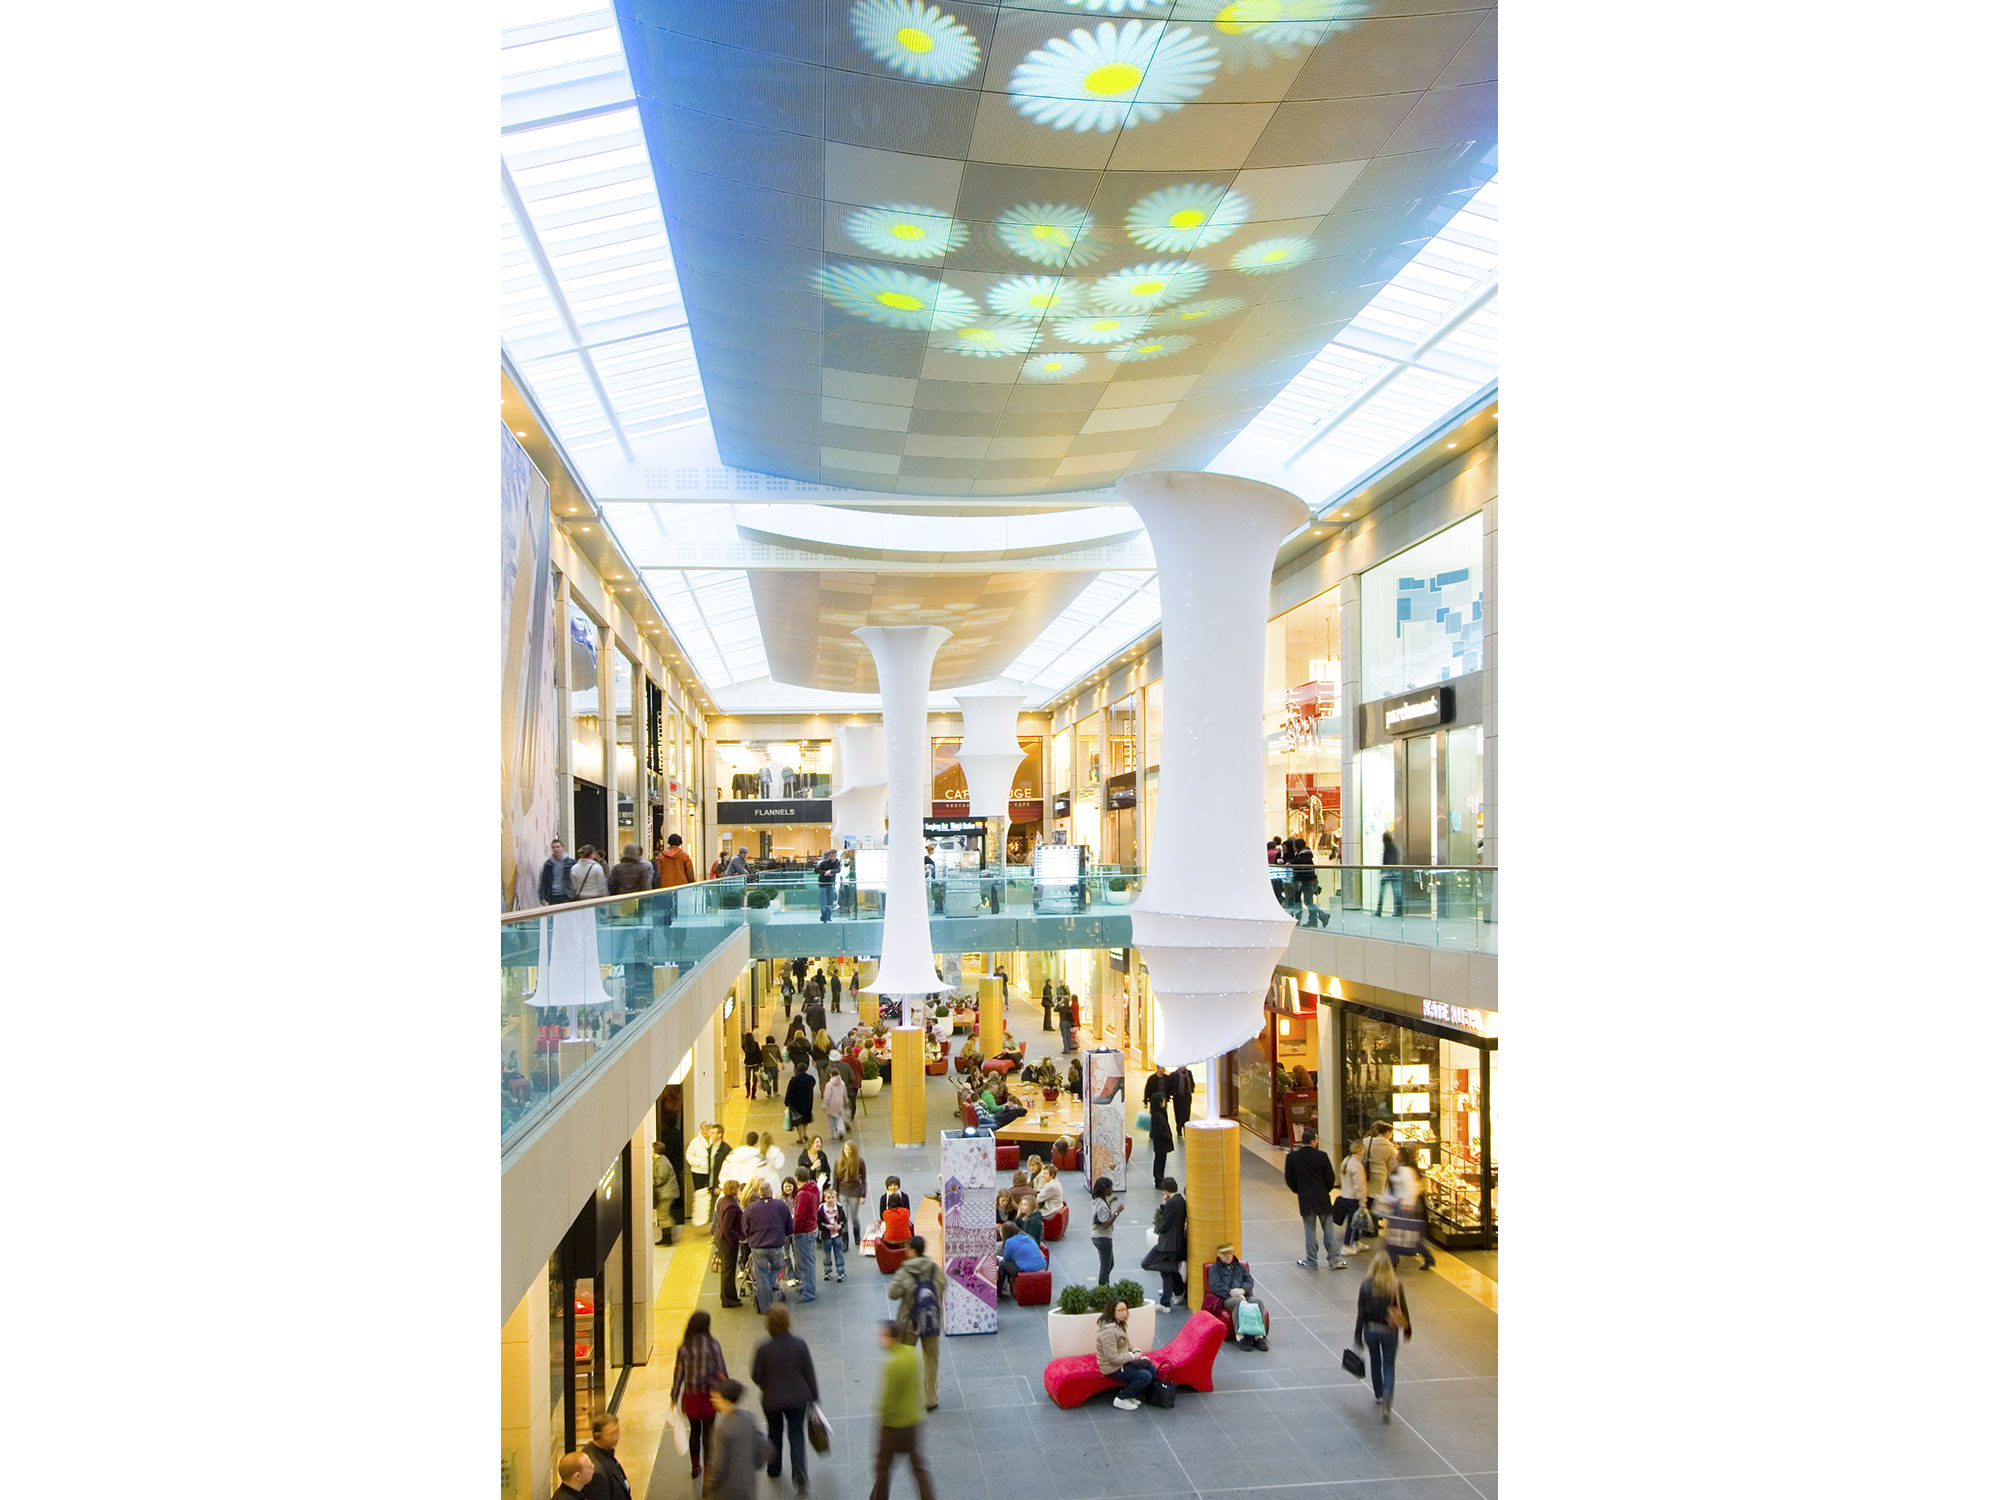 An image of a suspended ceiling inside Queensgate Shopping Centre, created by Construction Interior Design Ltd.